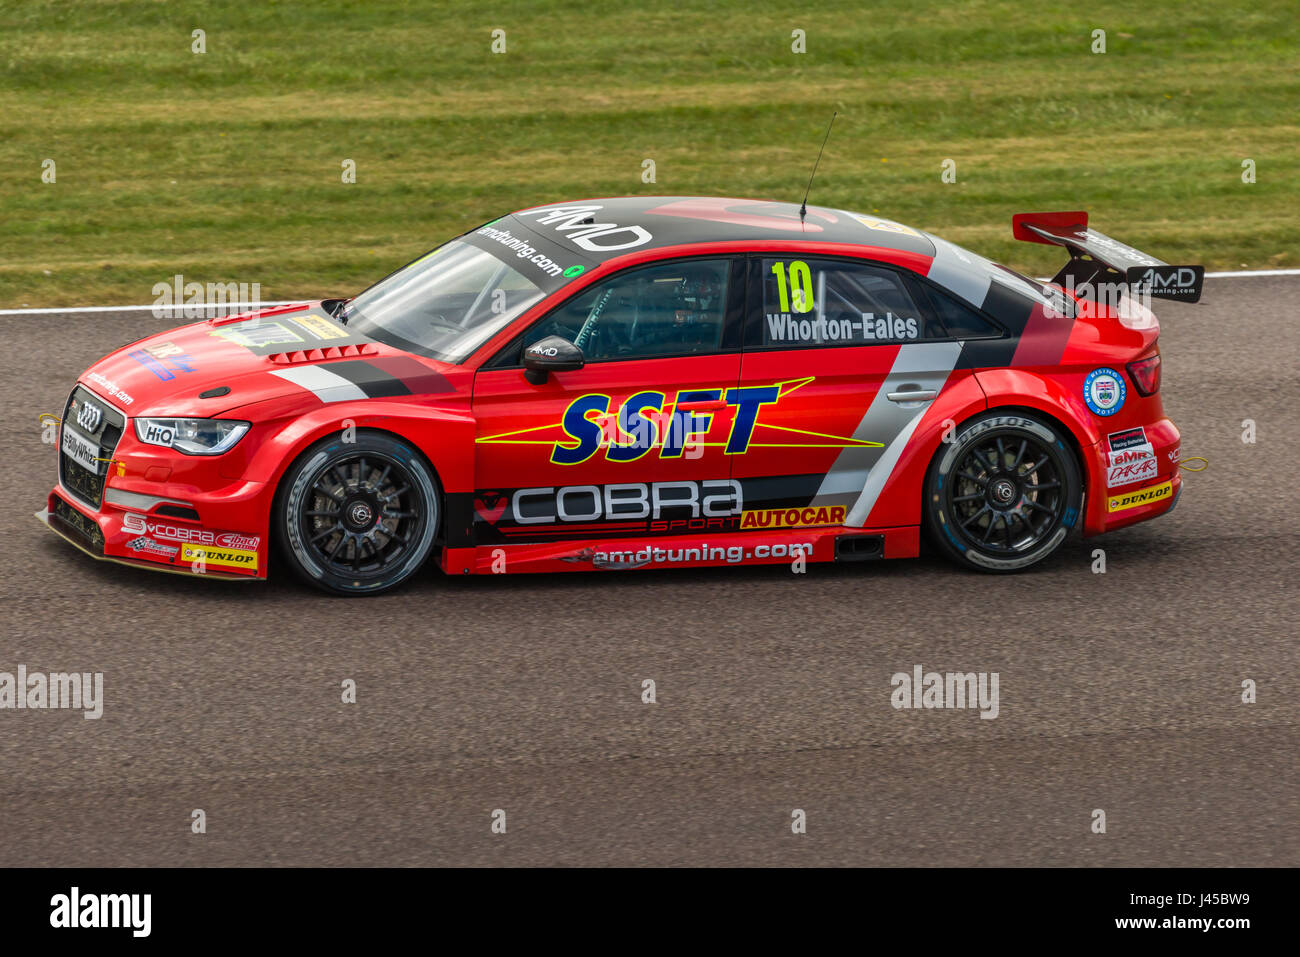 BTCC Driver Ant Whorton-Eales competing at Thruxton Circuit, Hampshire, on Sunday 7th May 2017. - Stock Image